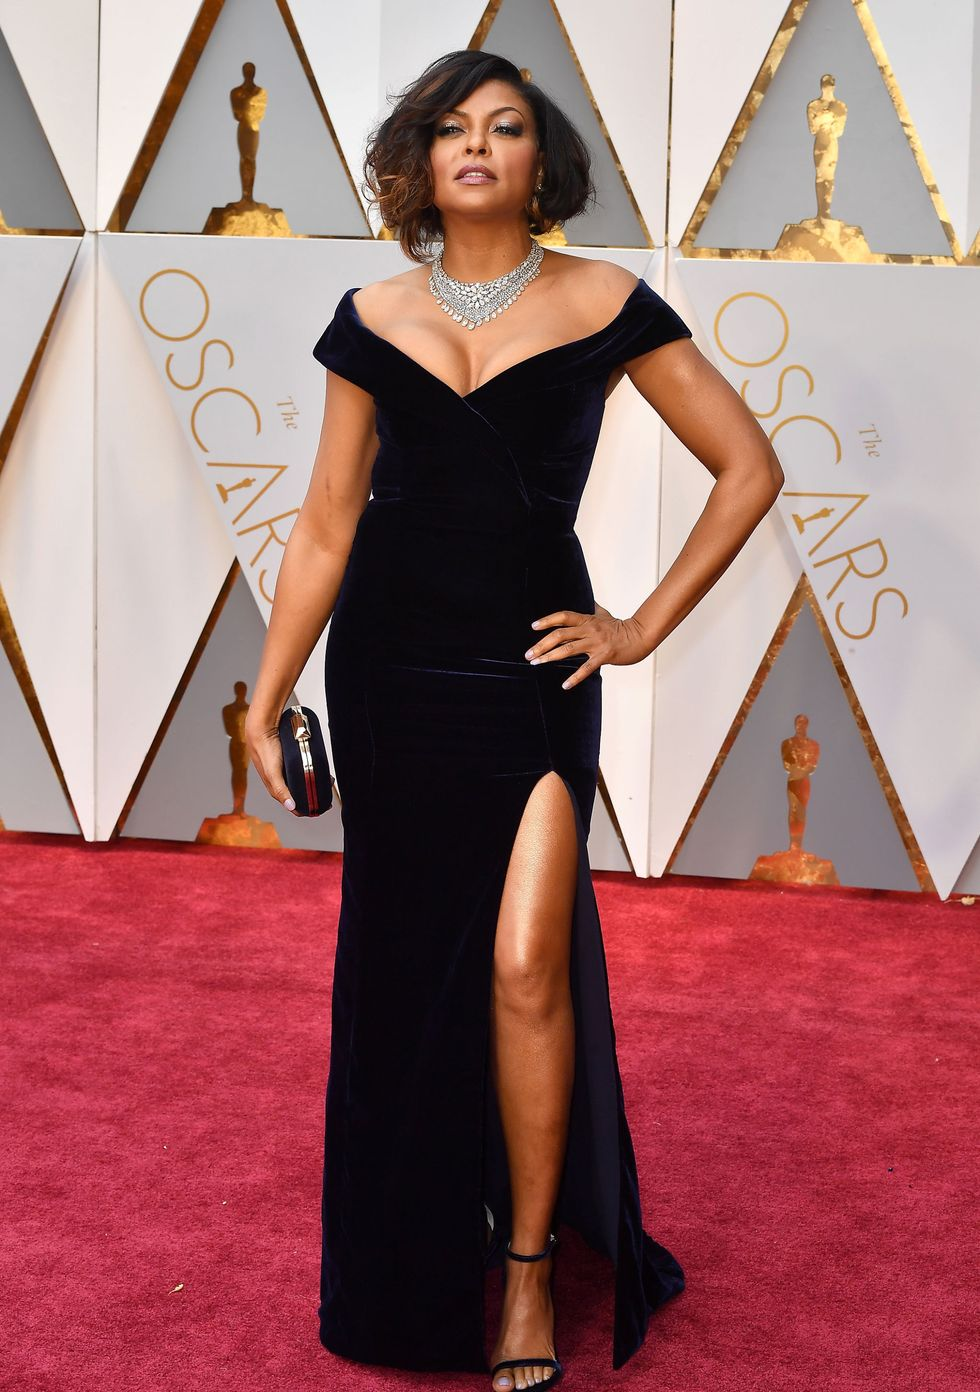 Taraji P. Henson, 2017 This va-va-voom Alberta Ferretti look on Taraji P. Henson is understated, but speaks volumes about her style, confidence, and killer body, as many Internet users pointed out.